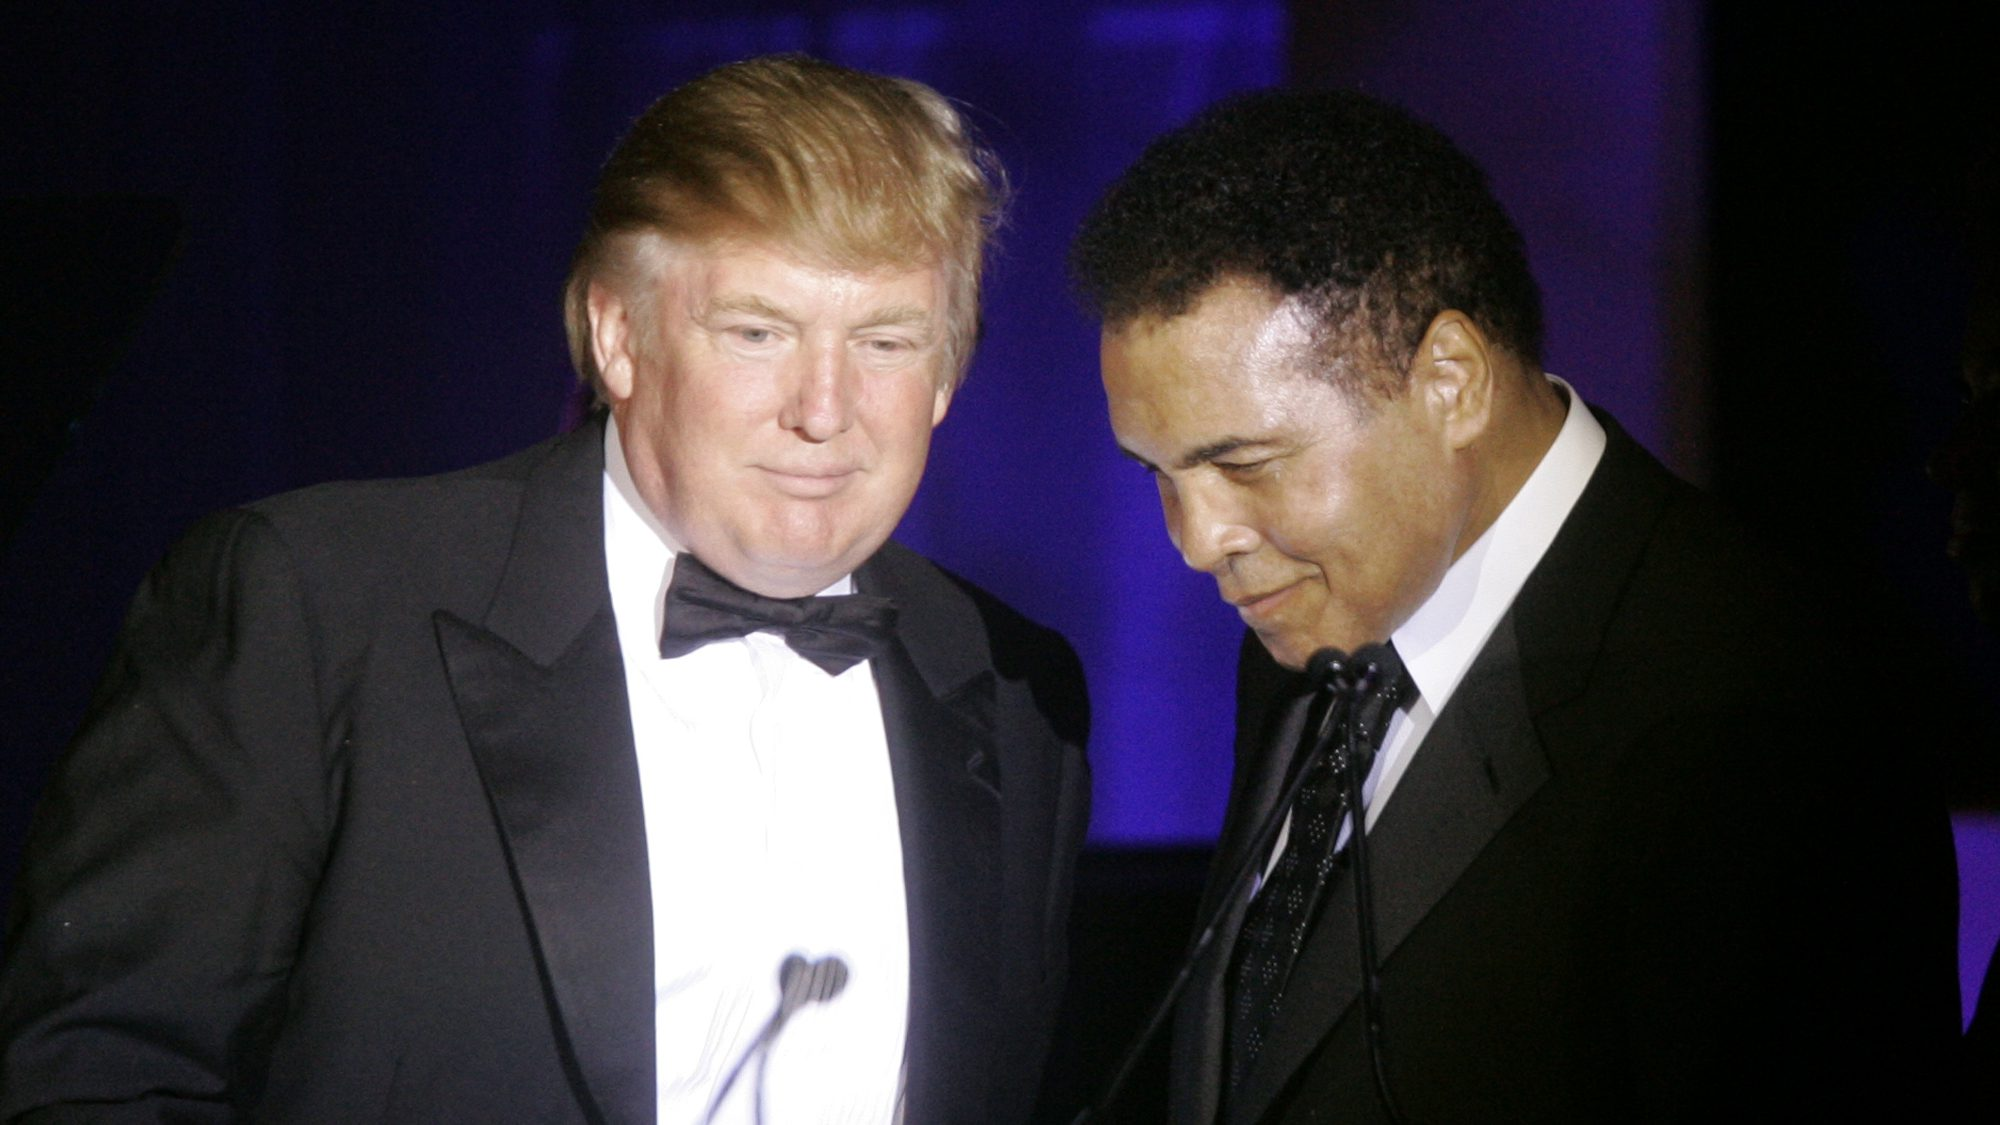 Donald Trump, left, accepts his Muhammad Ali award from Ali at Muhammad Ali's Celebrity Fight Night XIII in Phoenix, Ariz., Saturday, March 24, 2007. ()